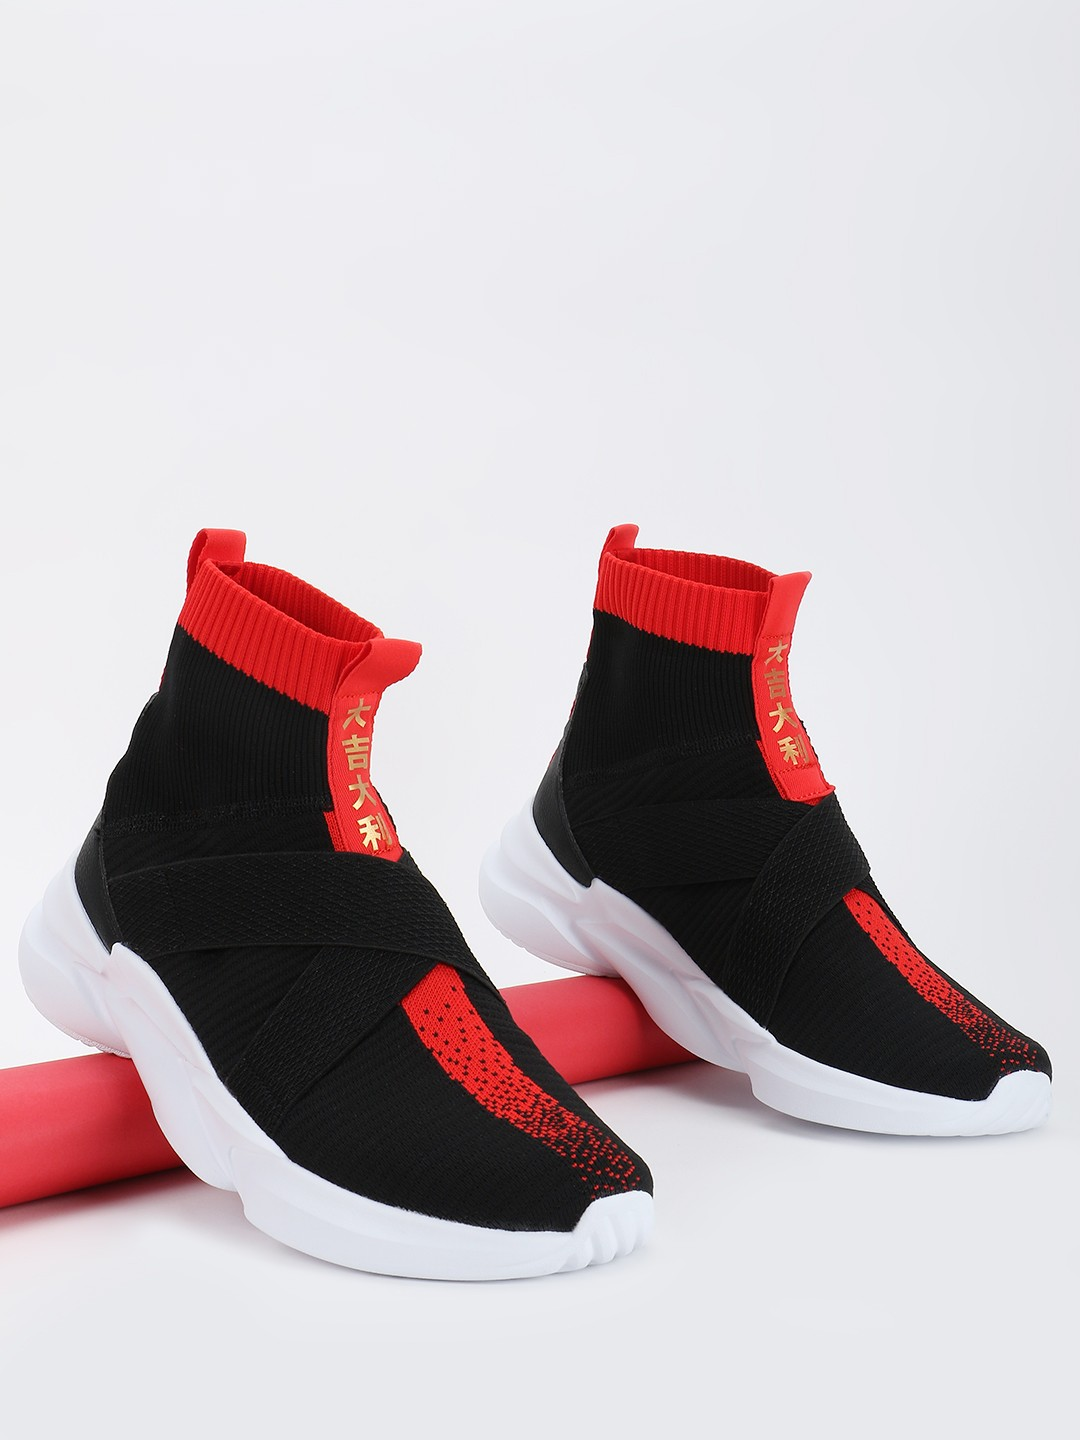 361 Degree Black Knitted Contrast Tape Sockliner Trainers 1